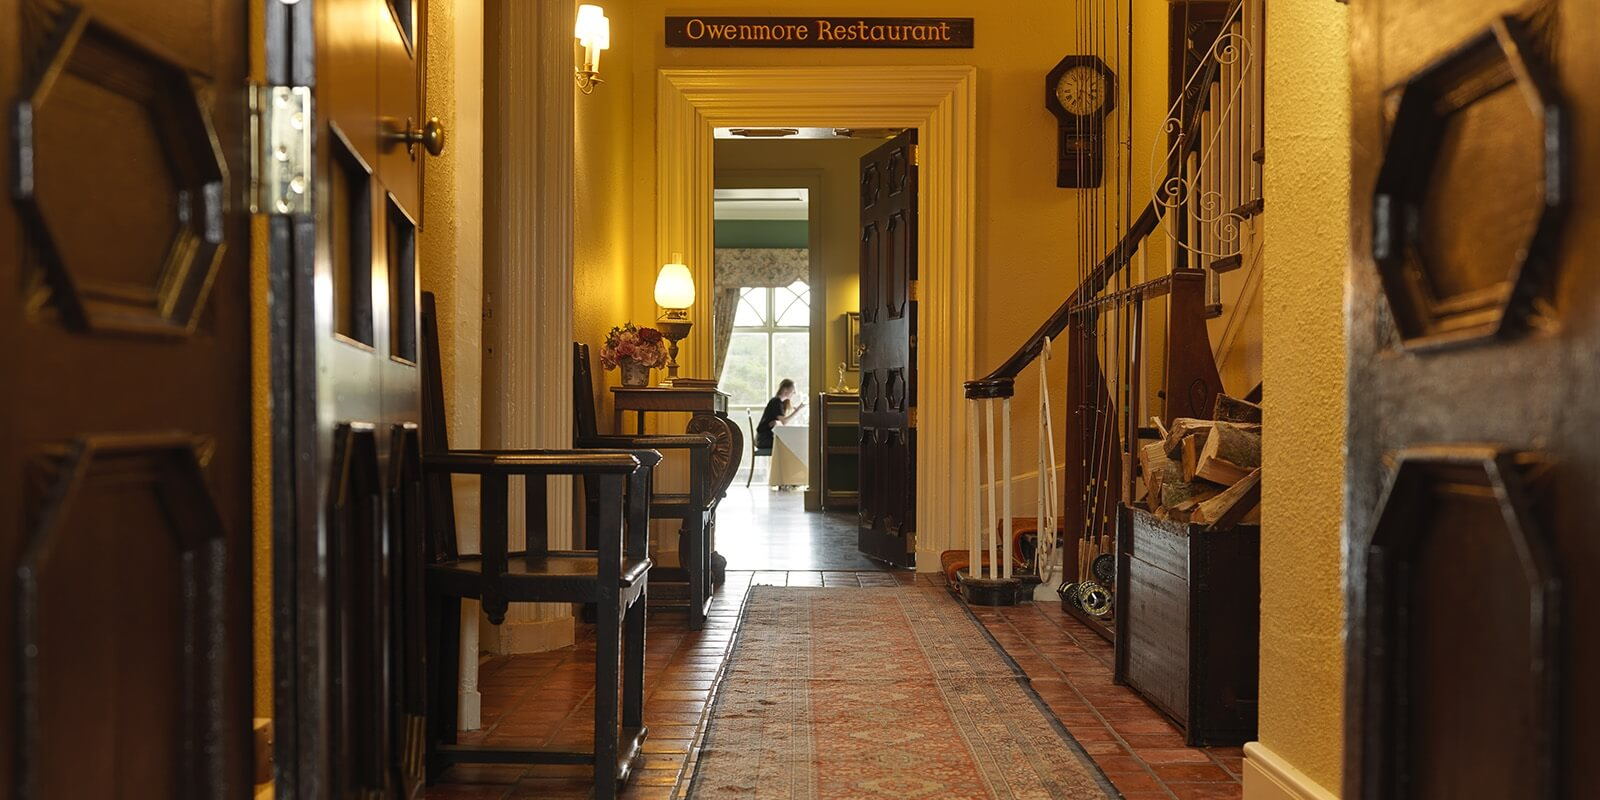 Entrance to the Owenmore Restaurant